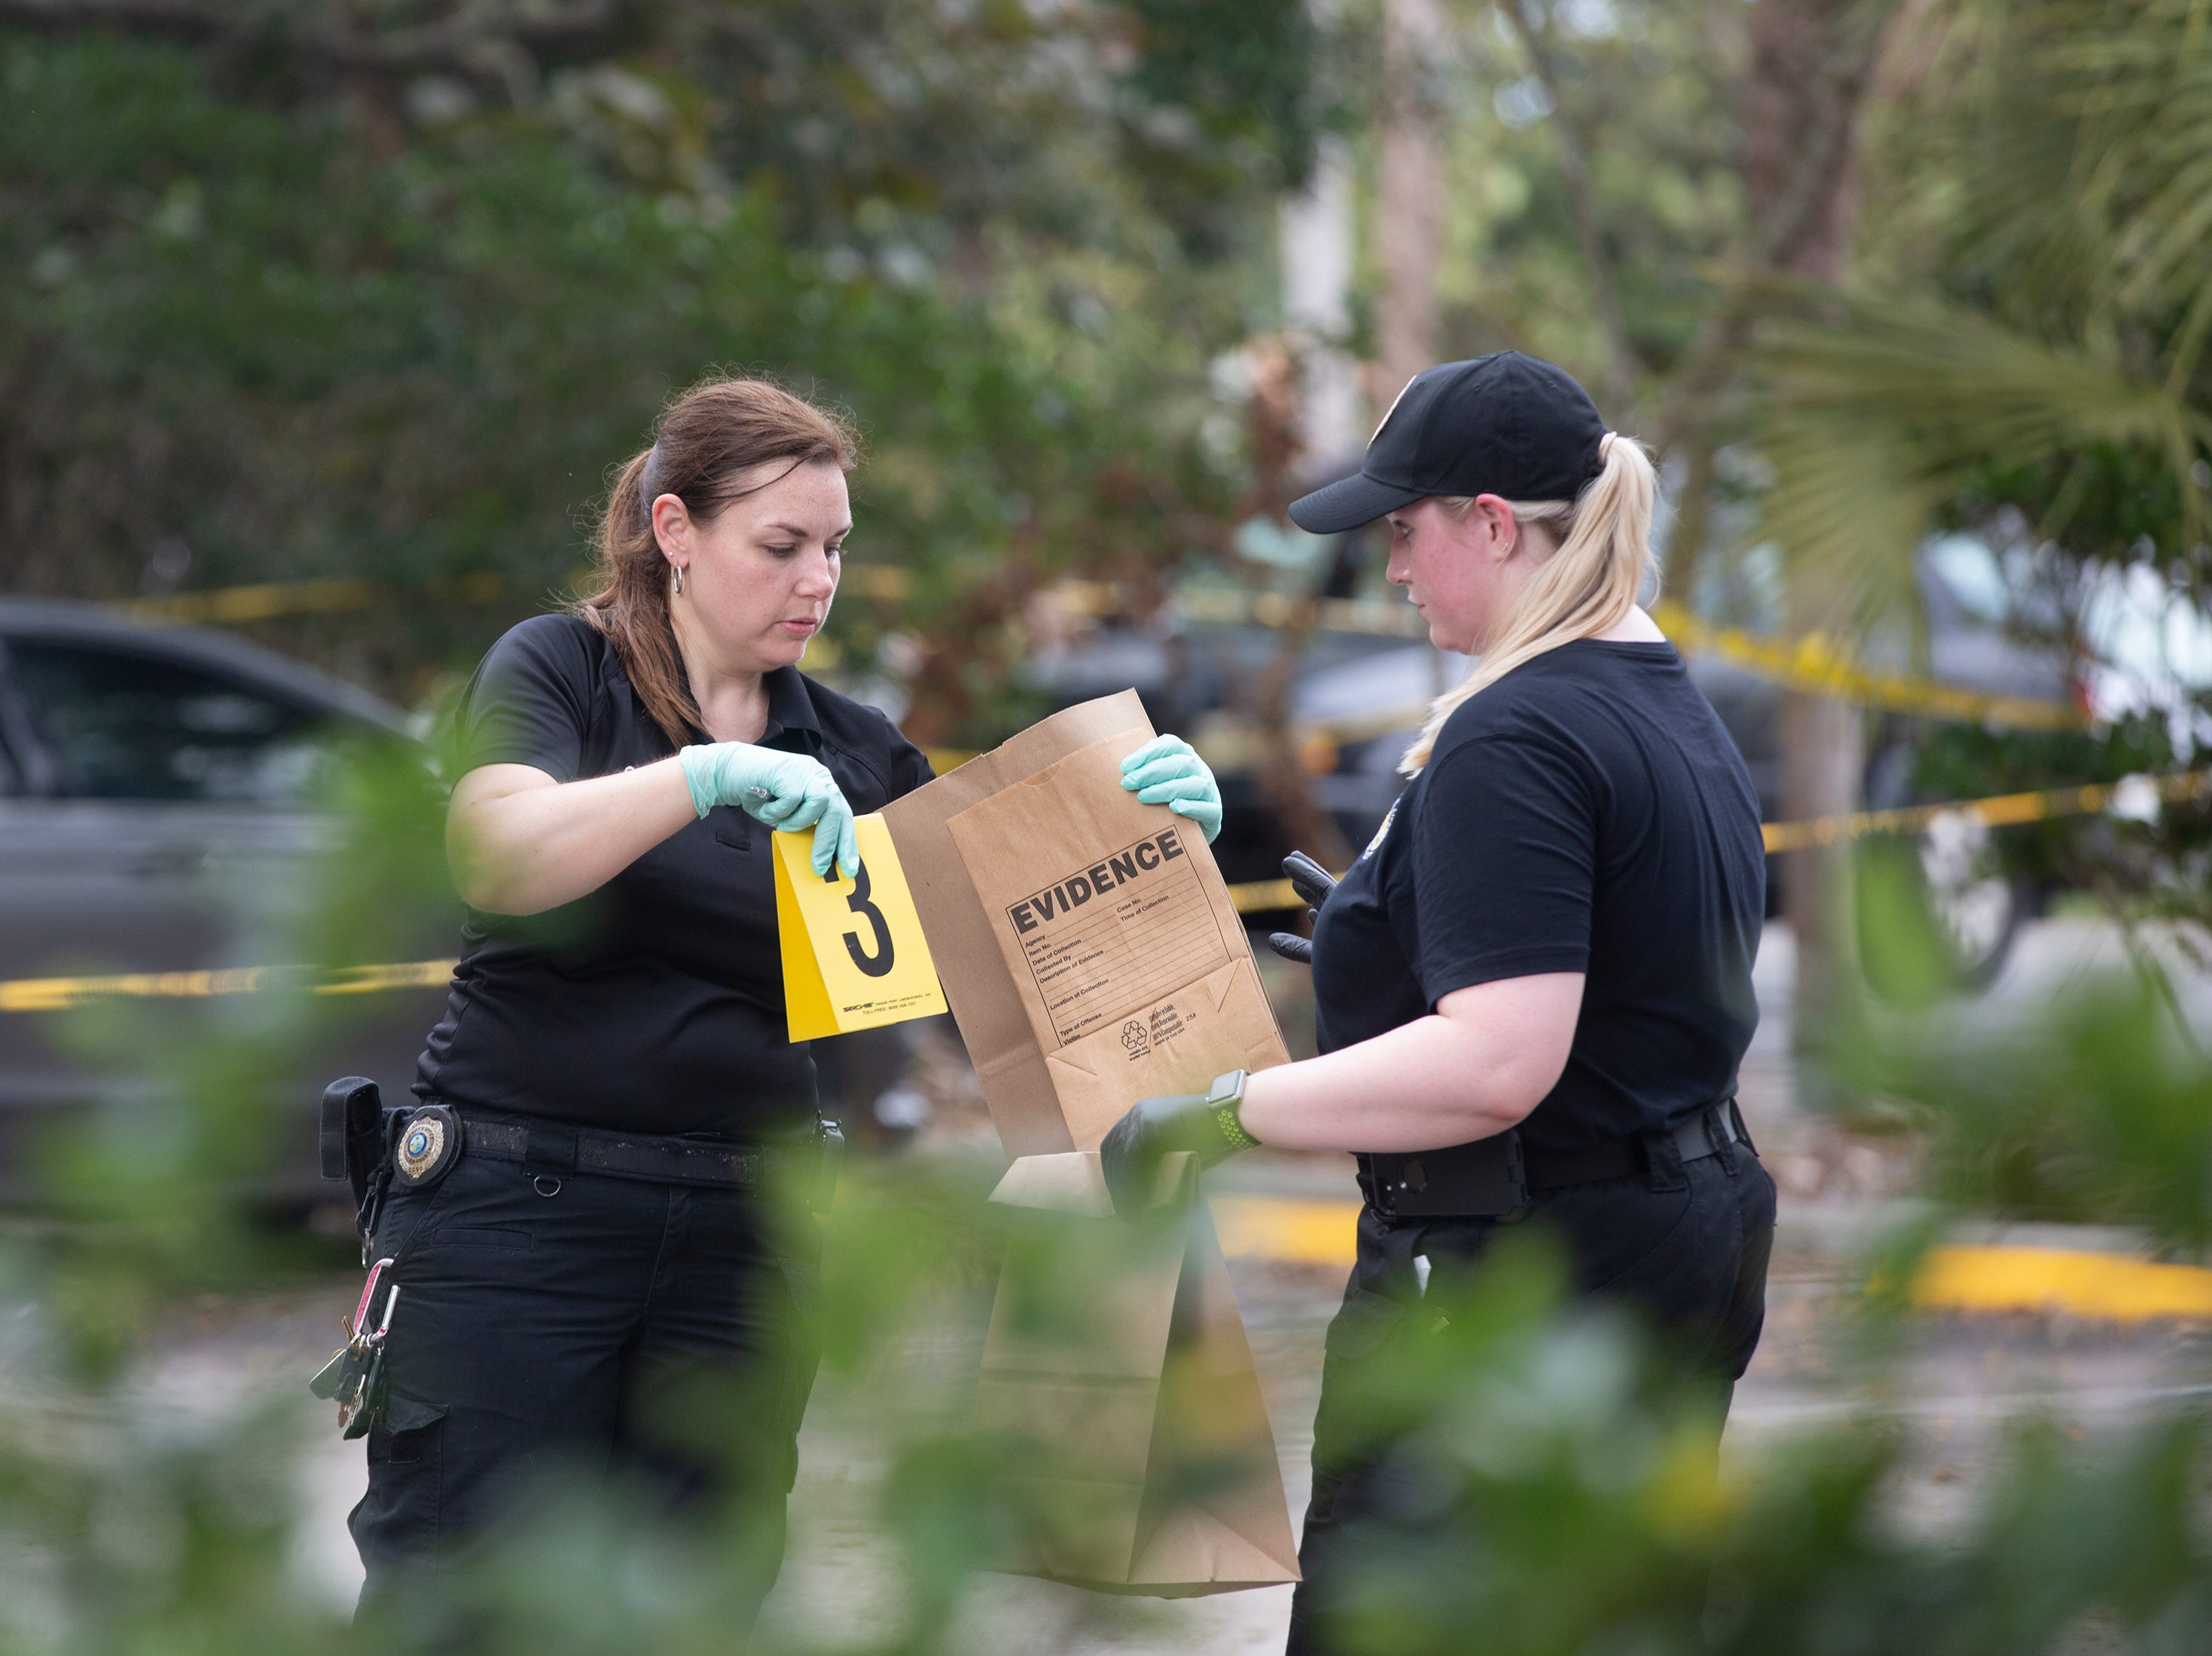 Collier County Sheriff's Office investigate a homicide, Thursday, Jan. 3, 2019, at a condominium complex in the 4000 block of Golden Gate Parkway near Collier Boulevard.